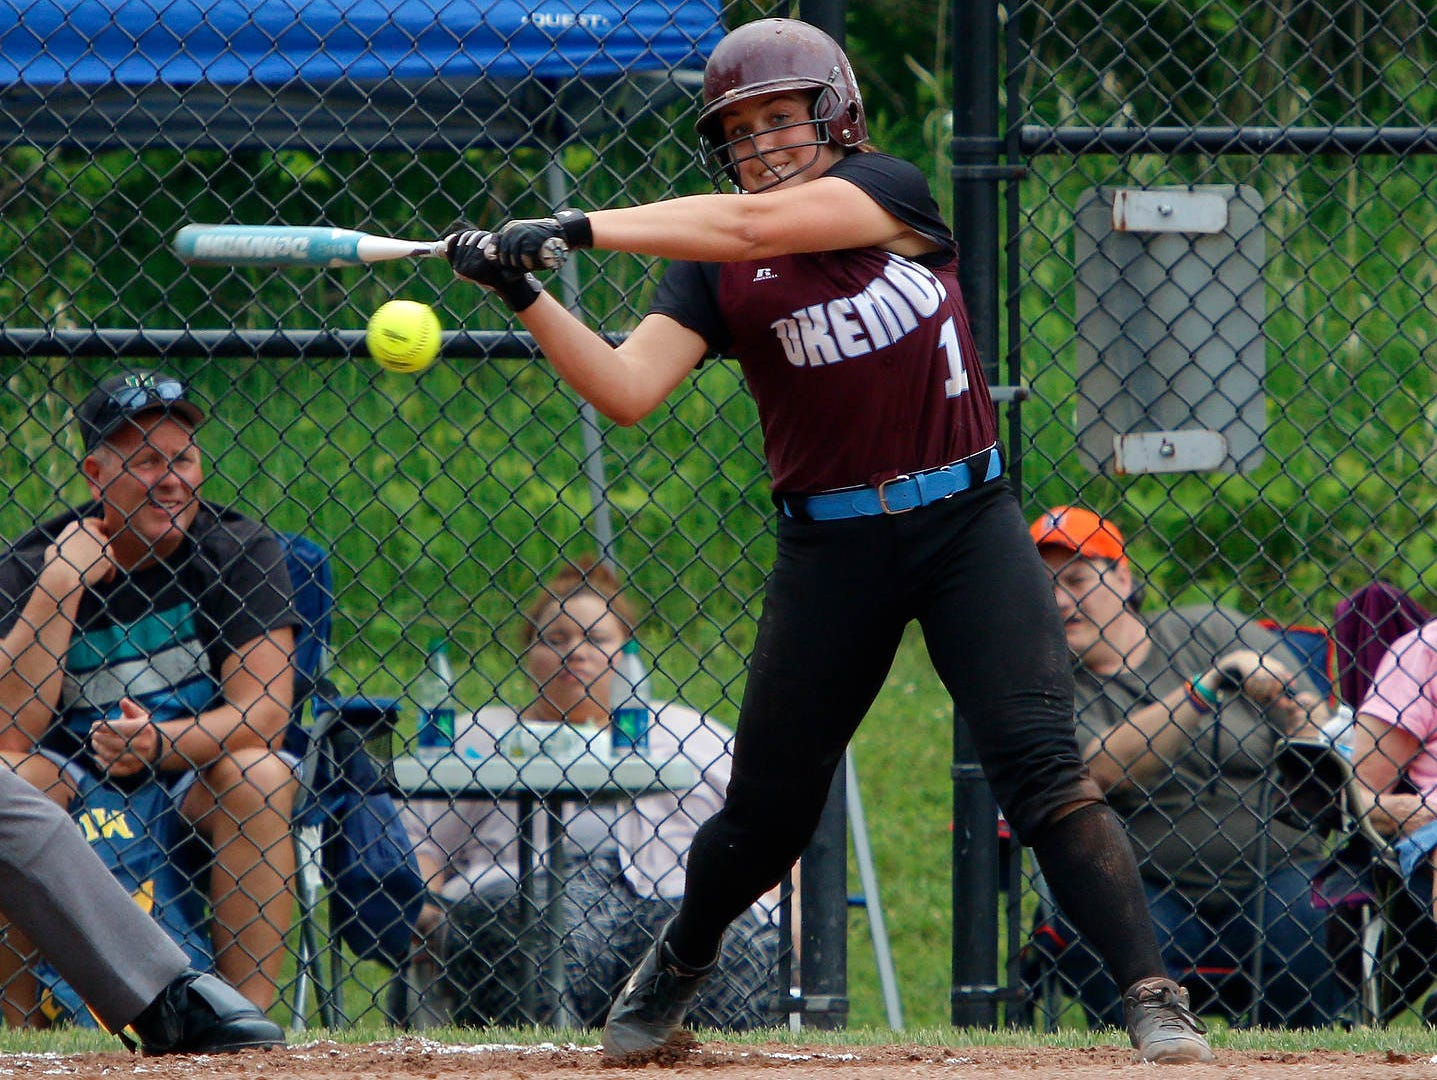 Kate Buckland and the Okemos softball team have overcome adversity this spring to capture a district title.